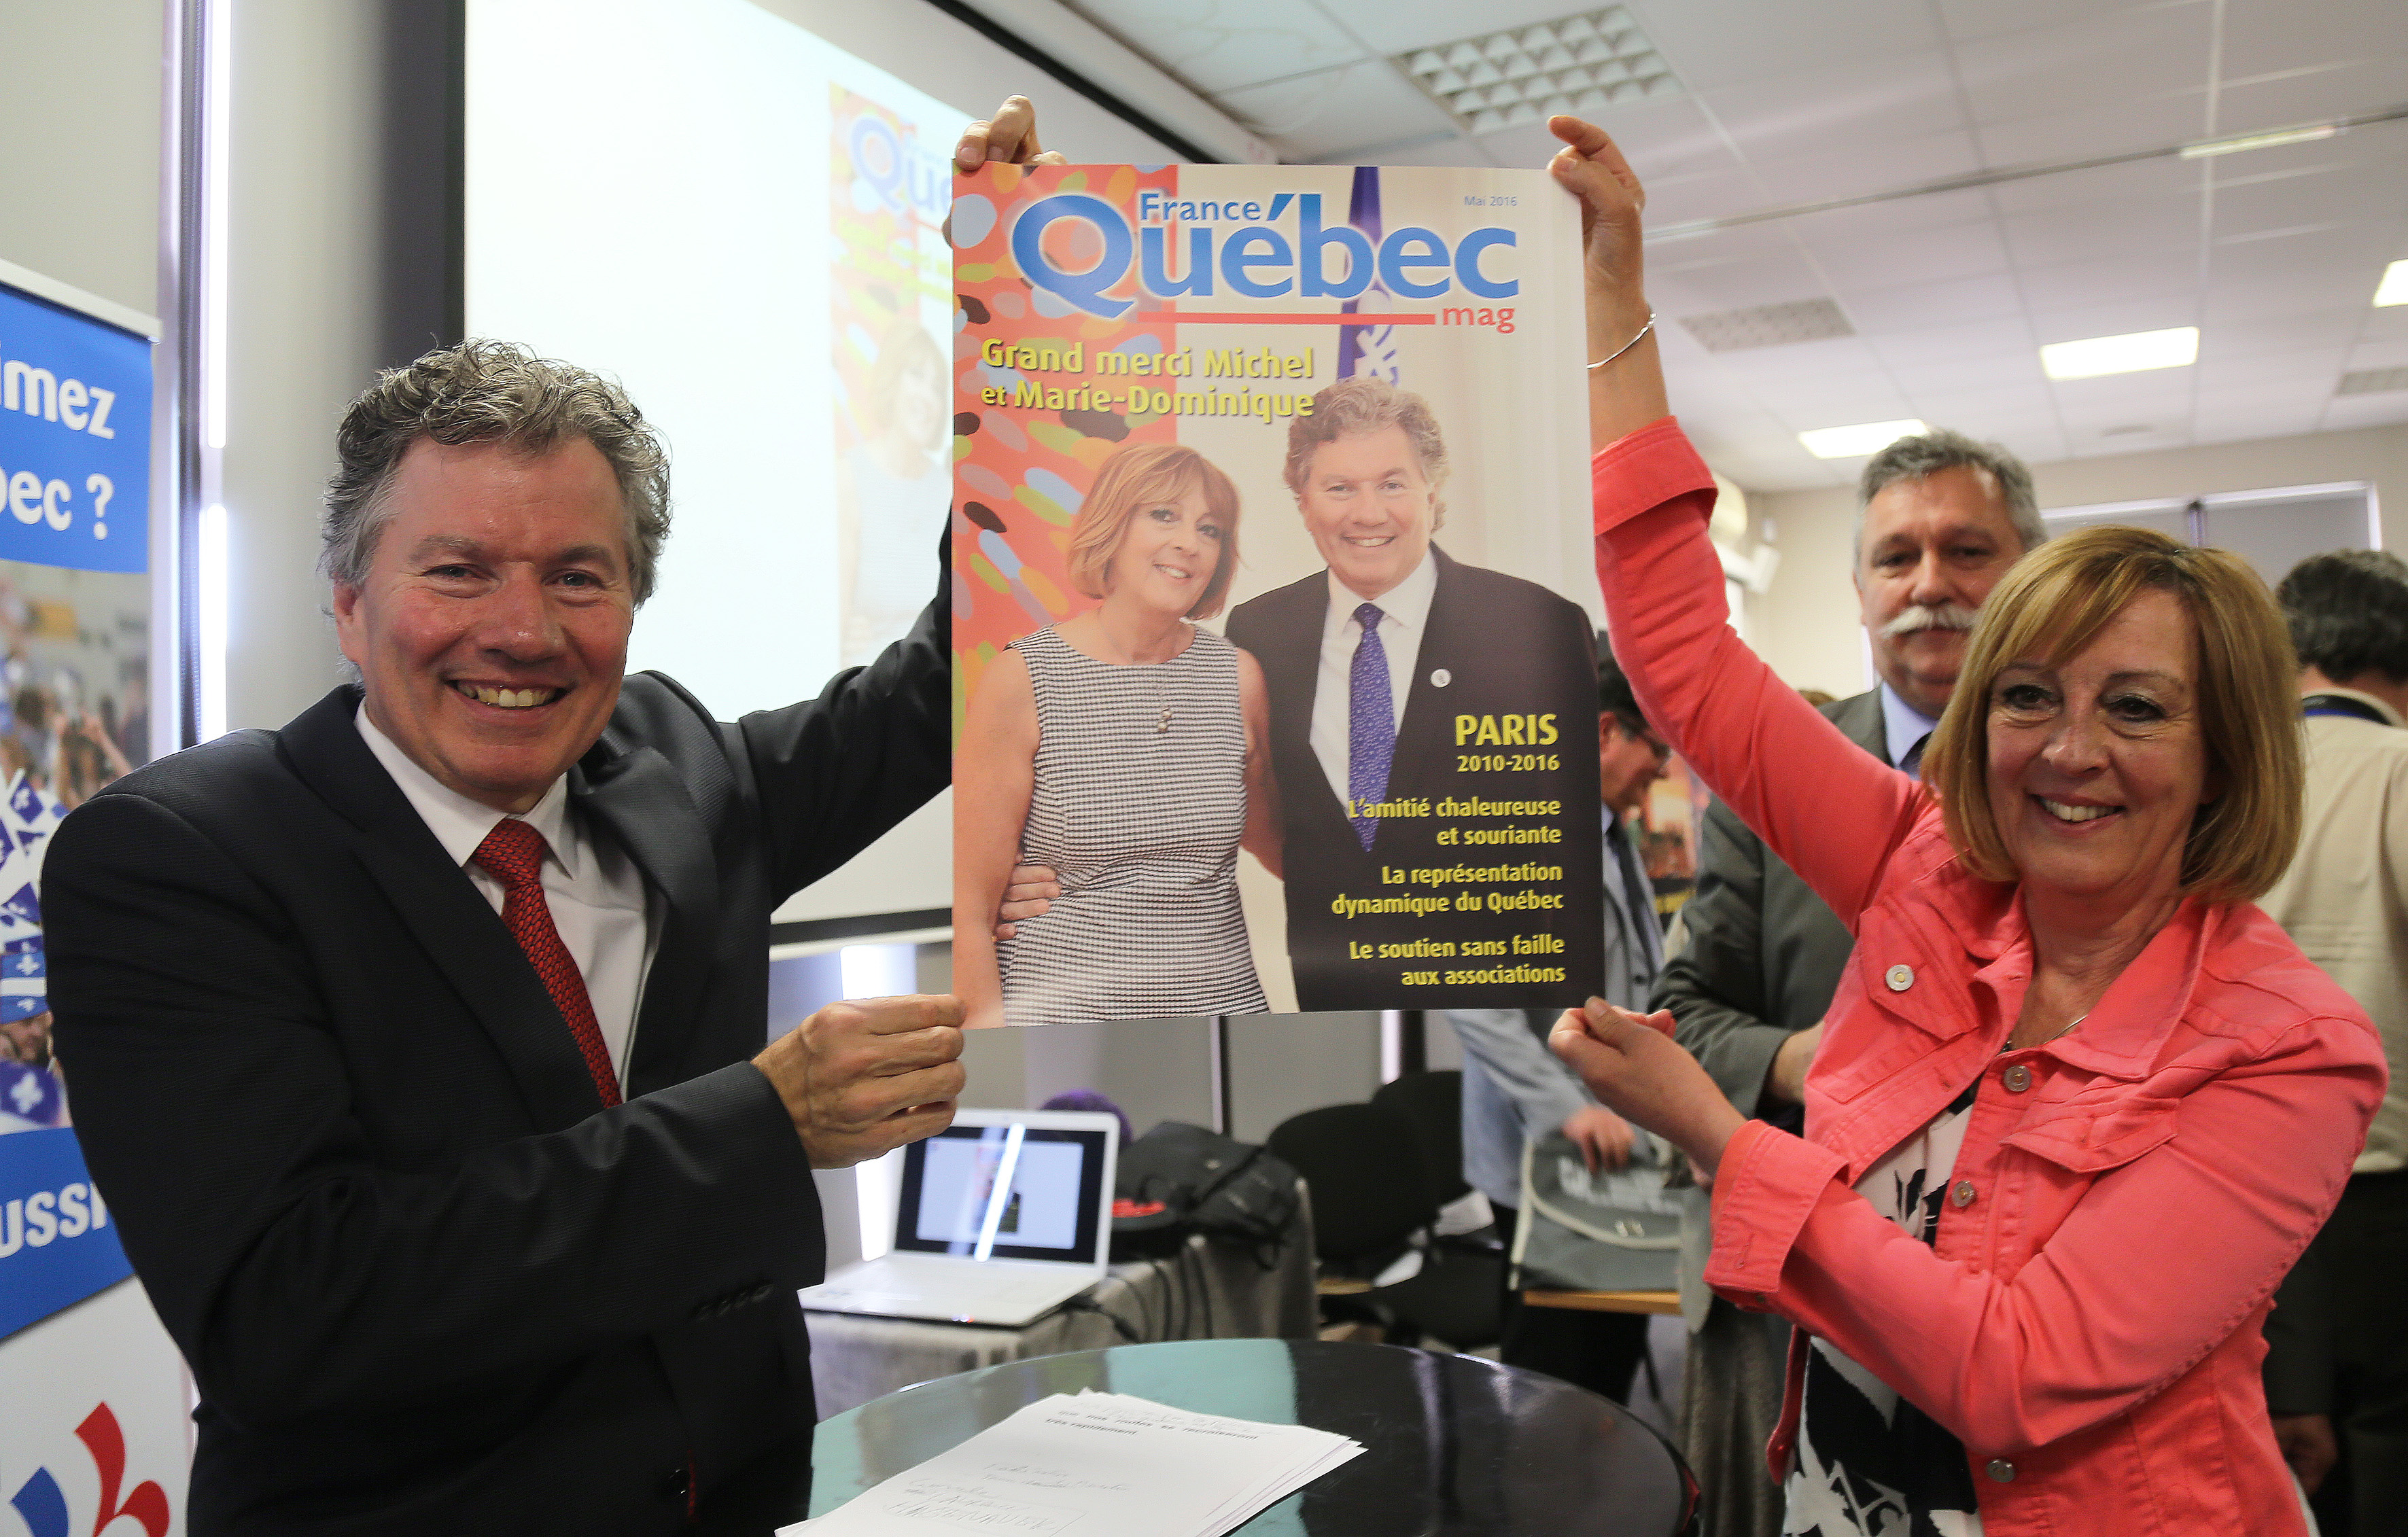 La surprise de France-Québec mag